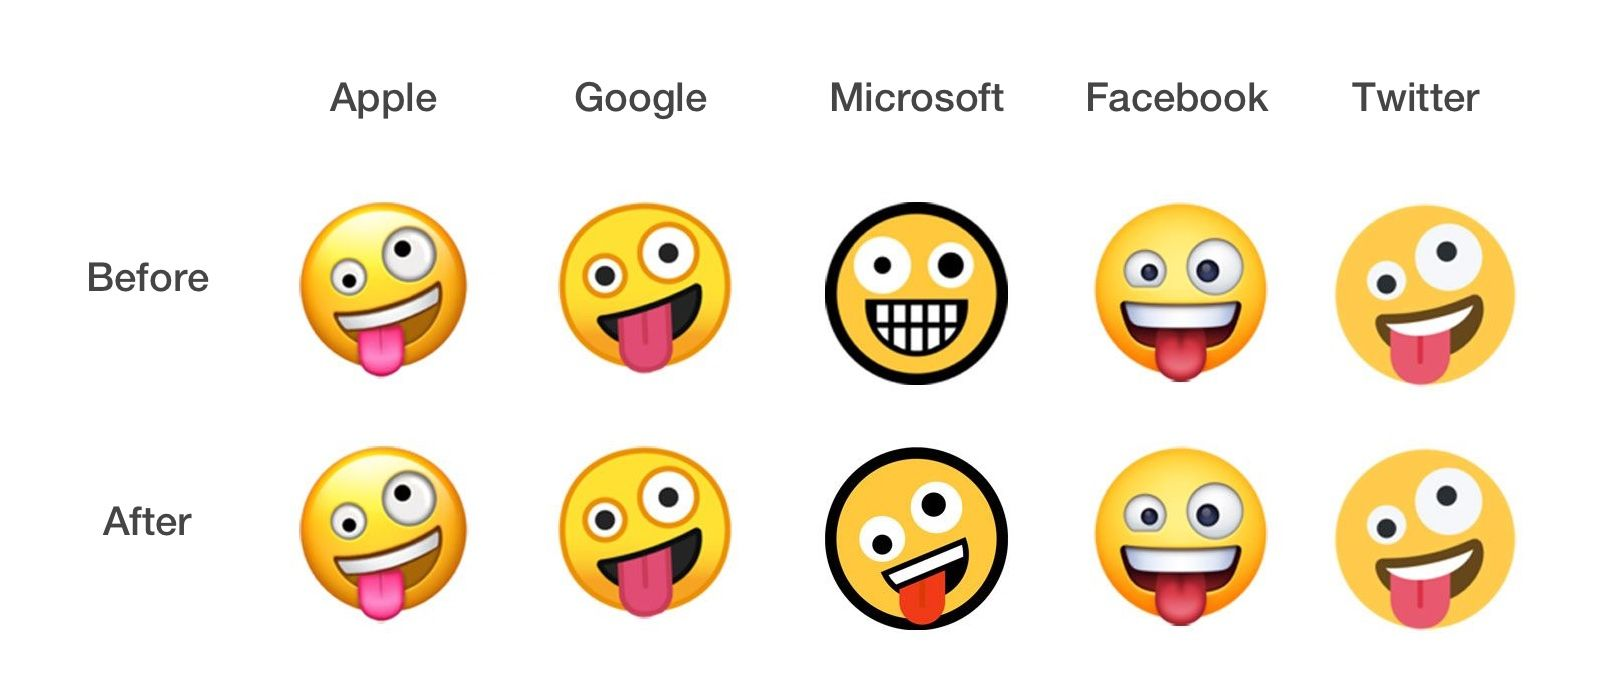 Emojipedia-Windows-10-May-2019-Emoji-Changelog-Zany-Face-Comparison-Cross-Platform